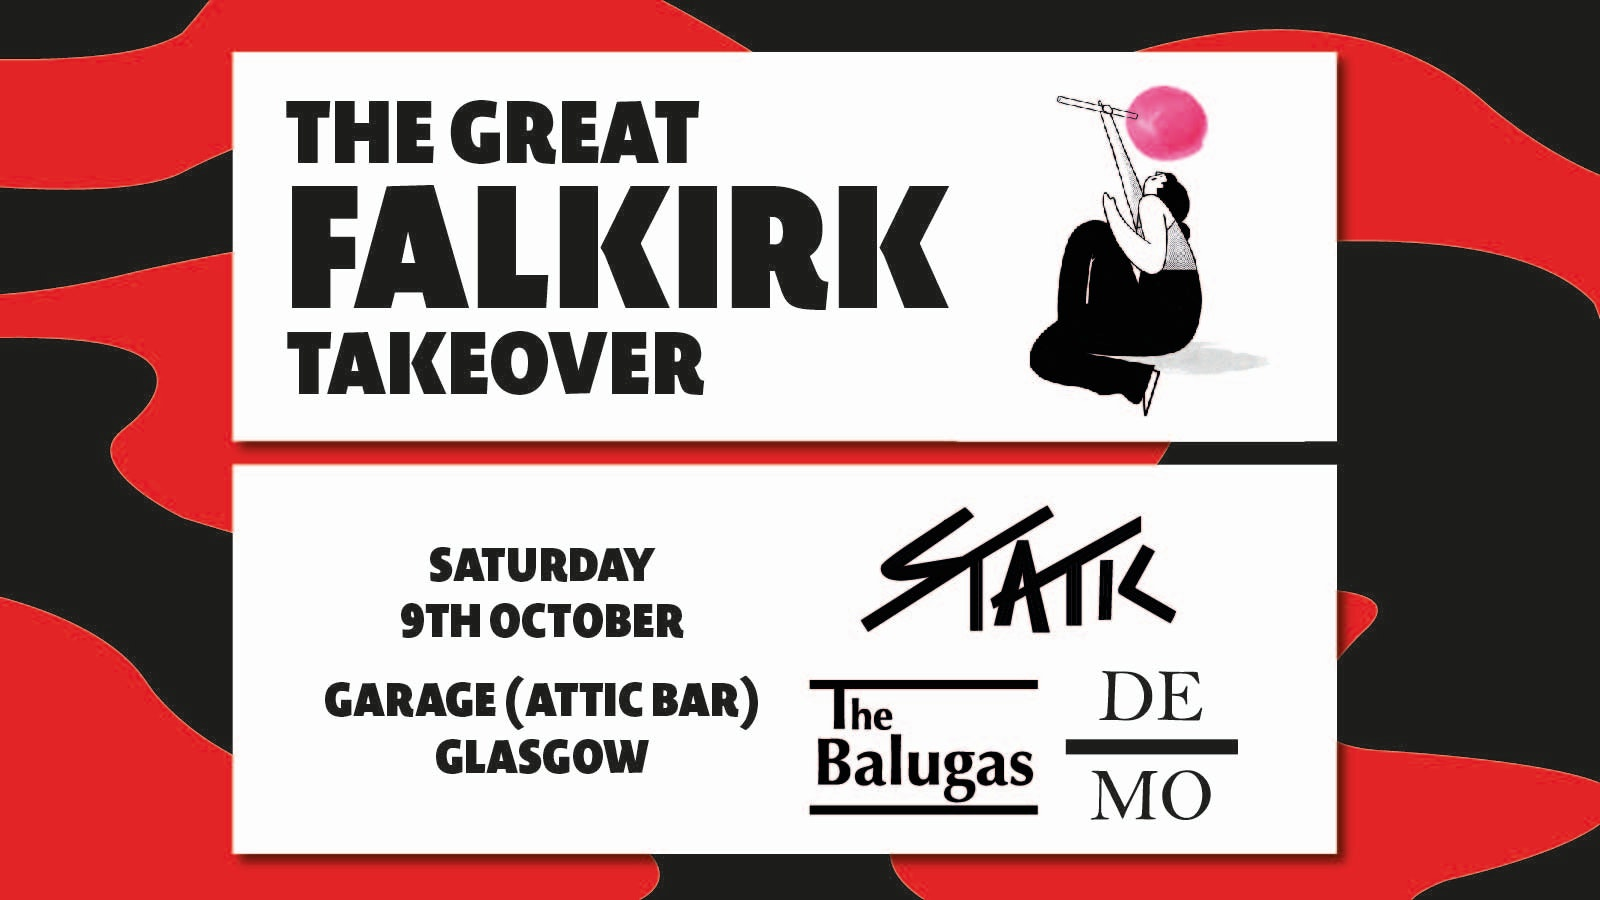 The Great Falkirk Takeover – Glasgow